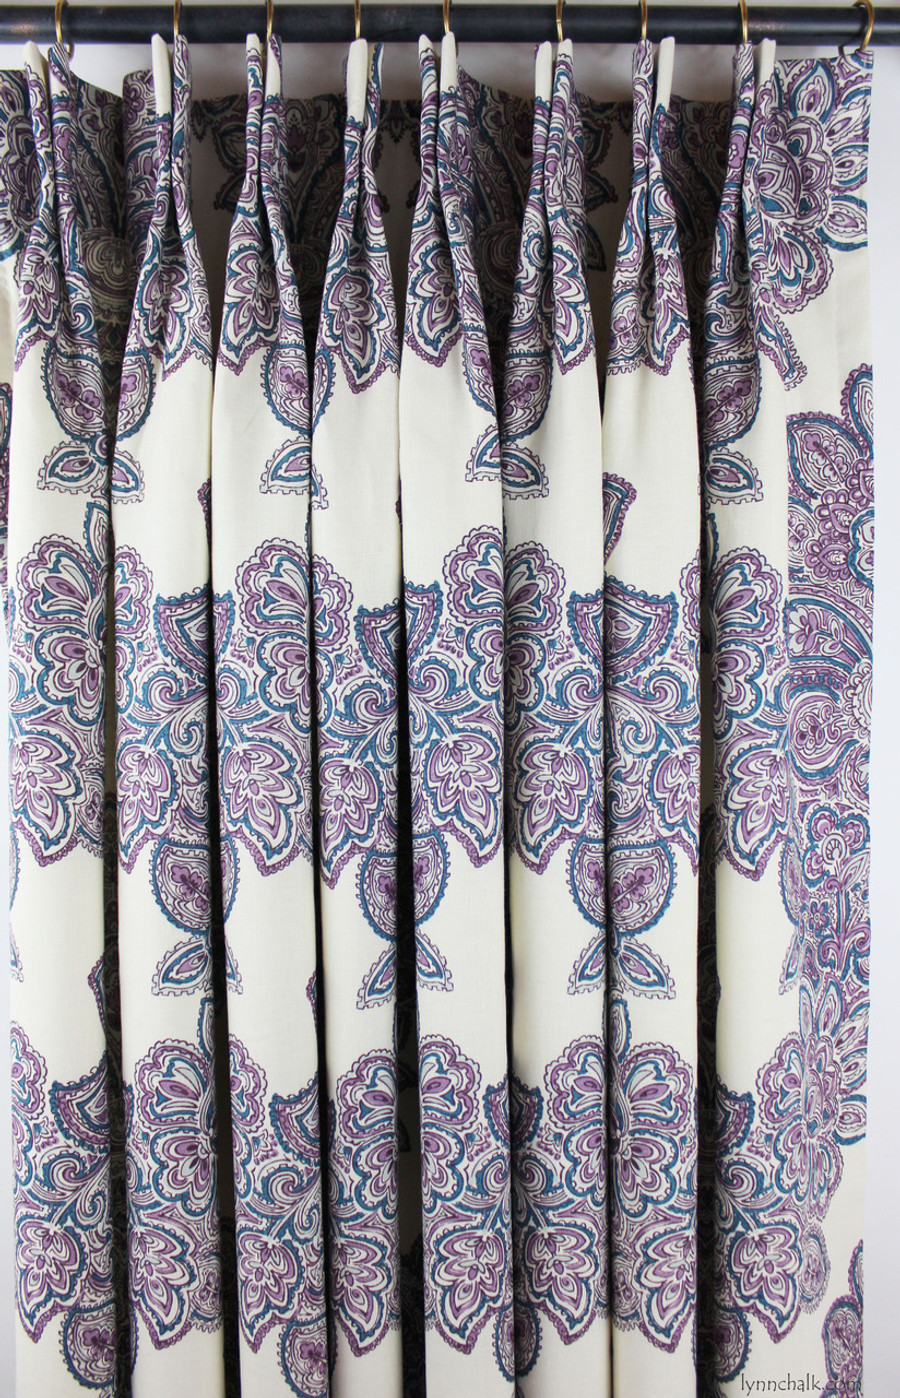 Duralee Maris Custom Dining Room Drapes (shown in Currant-also comes in Rose, Sea Green and Multi)